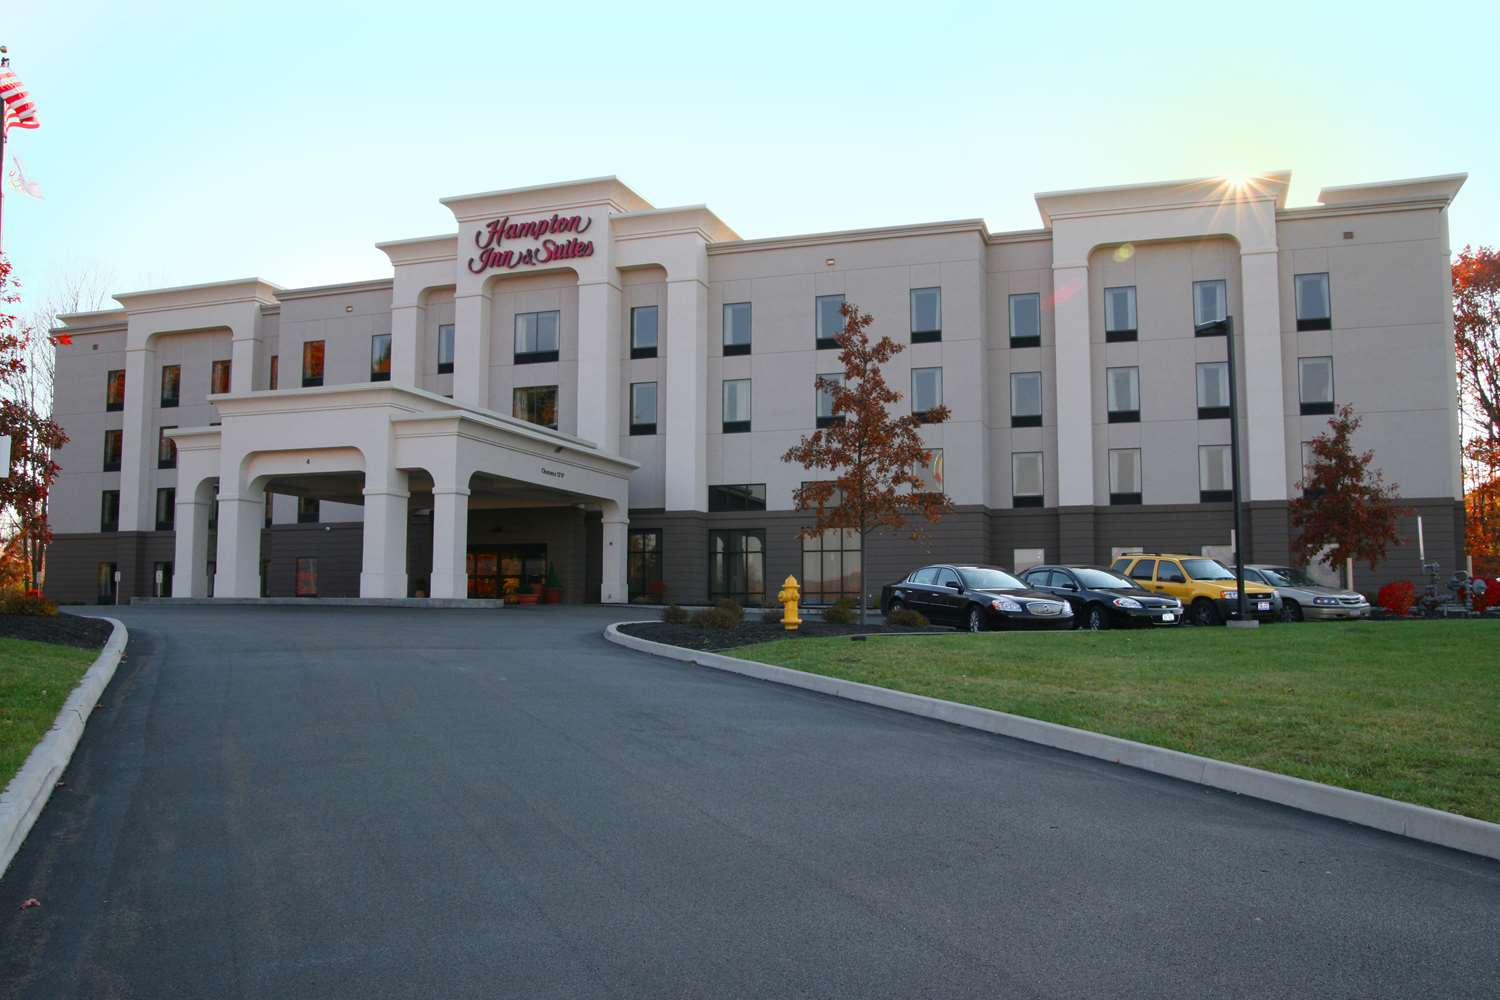 Hampton Inn Suites Jamestown